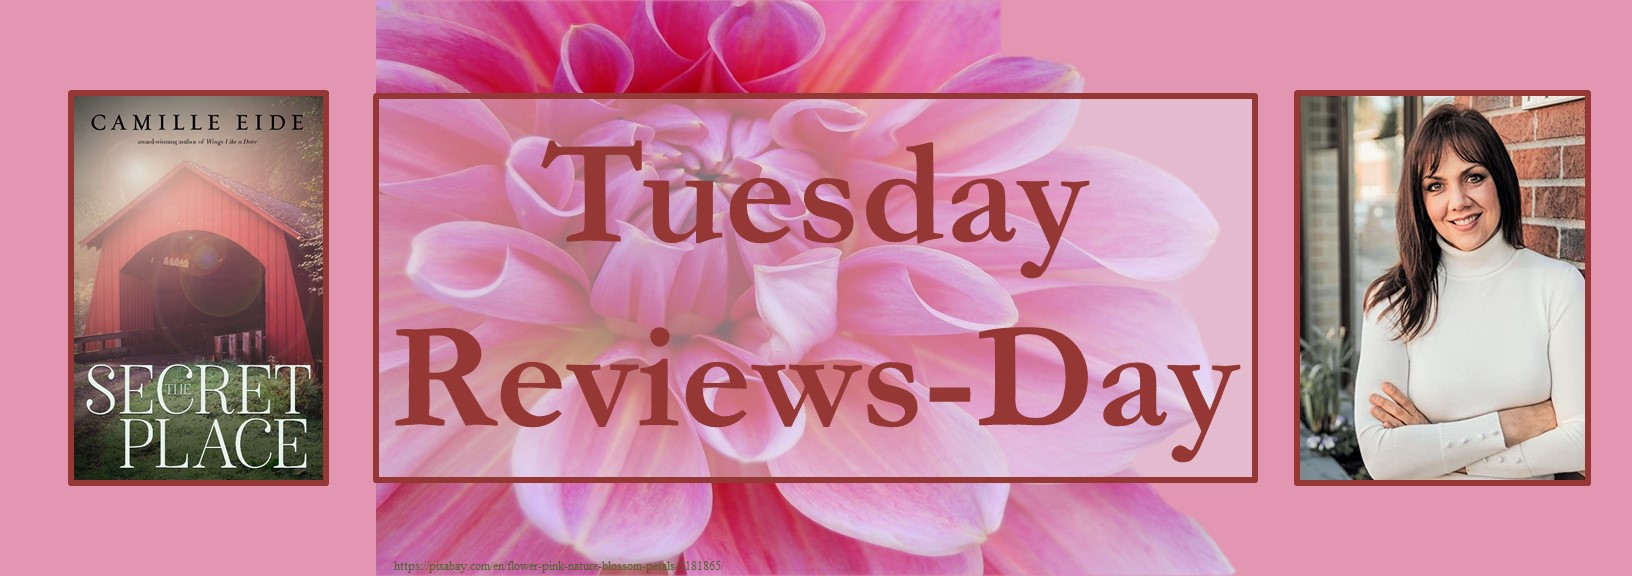 051521 - the secret place - tuesday reviews day banner